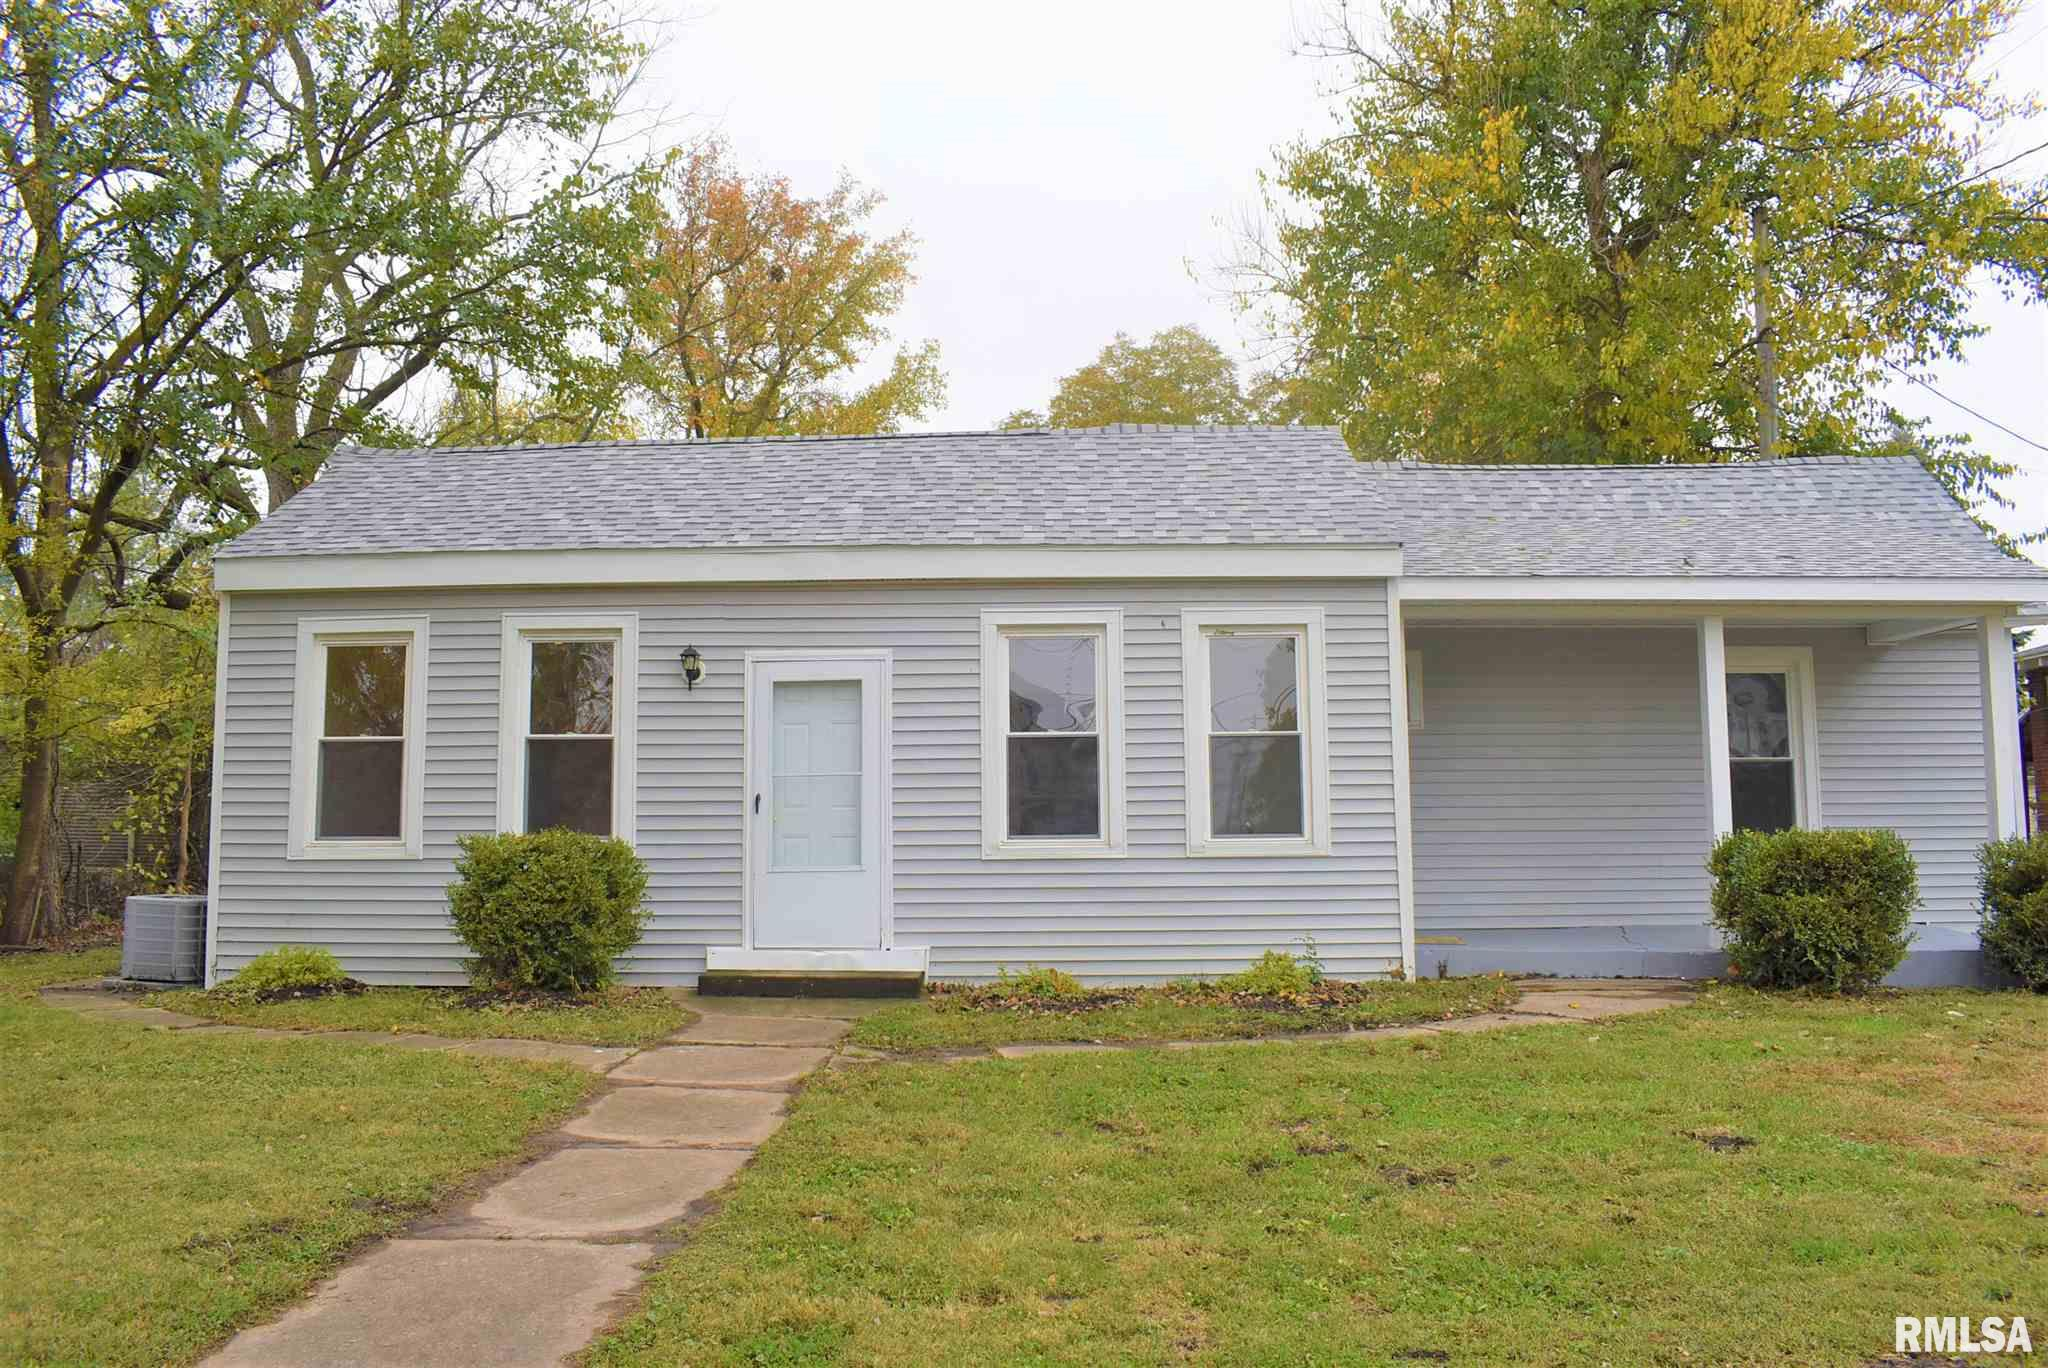 163 S MAIN Property Photo - Winchester, IL real estate listing